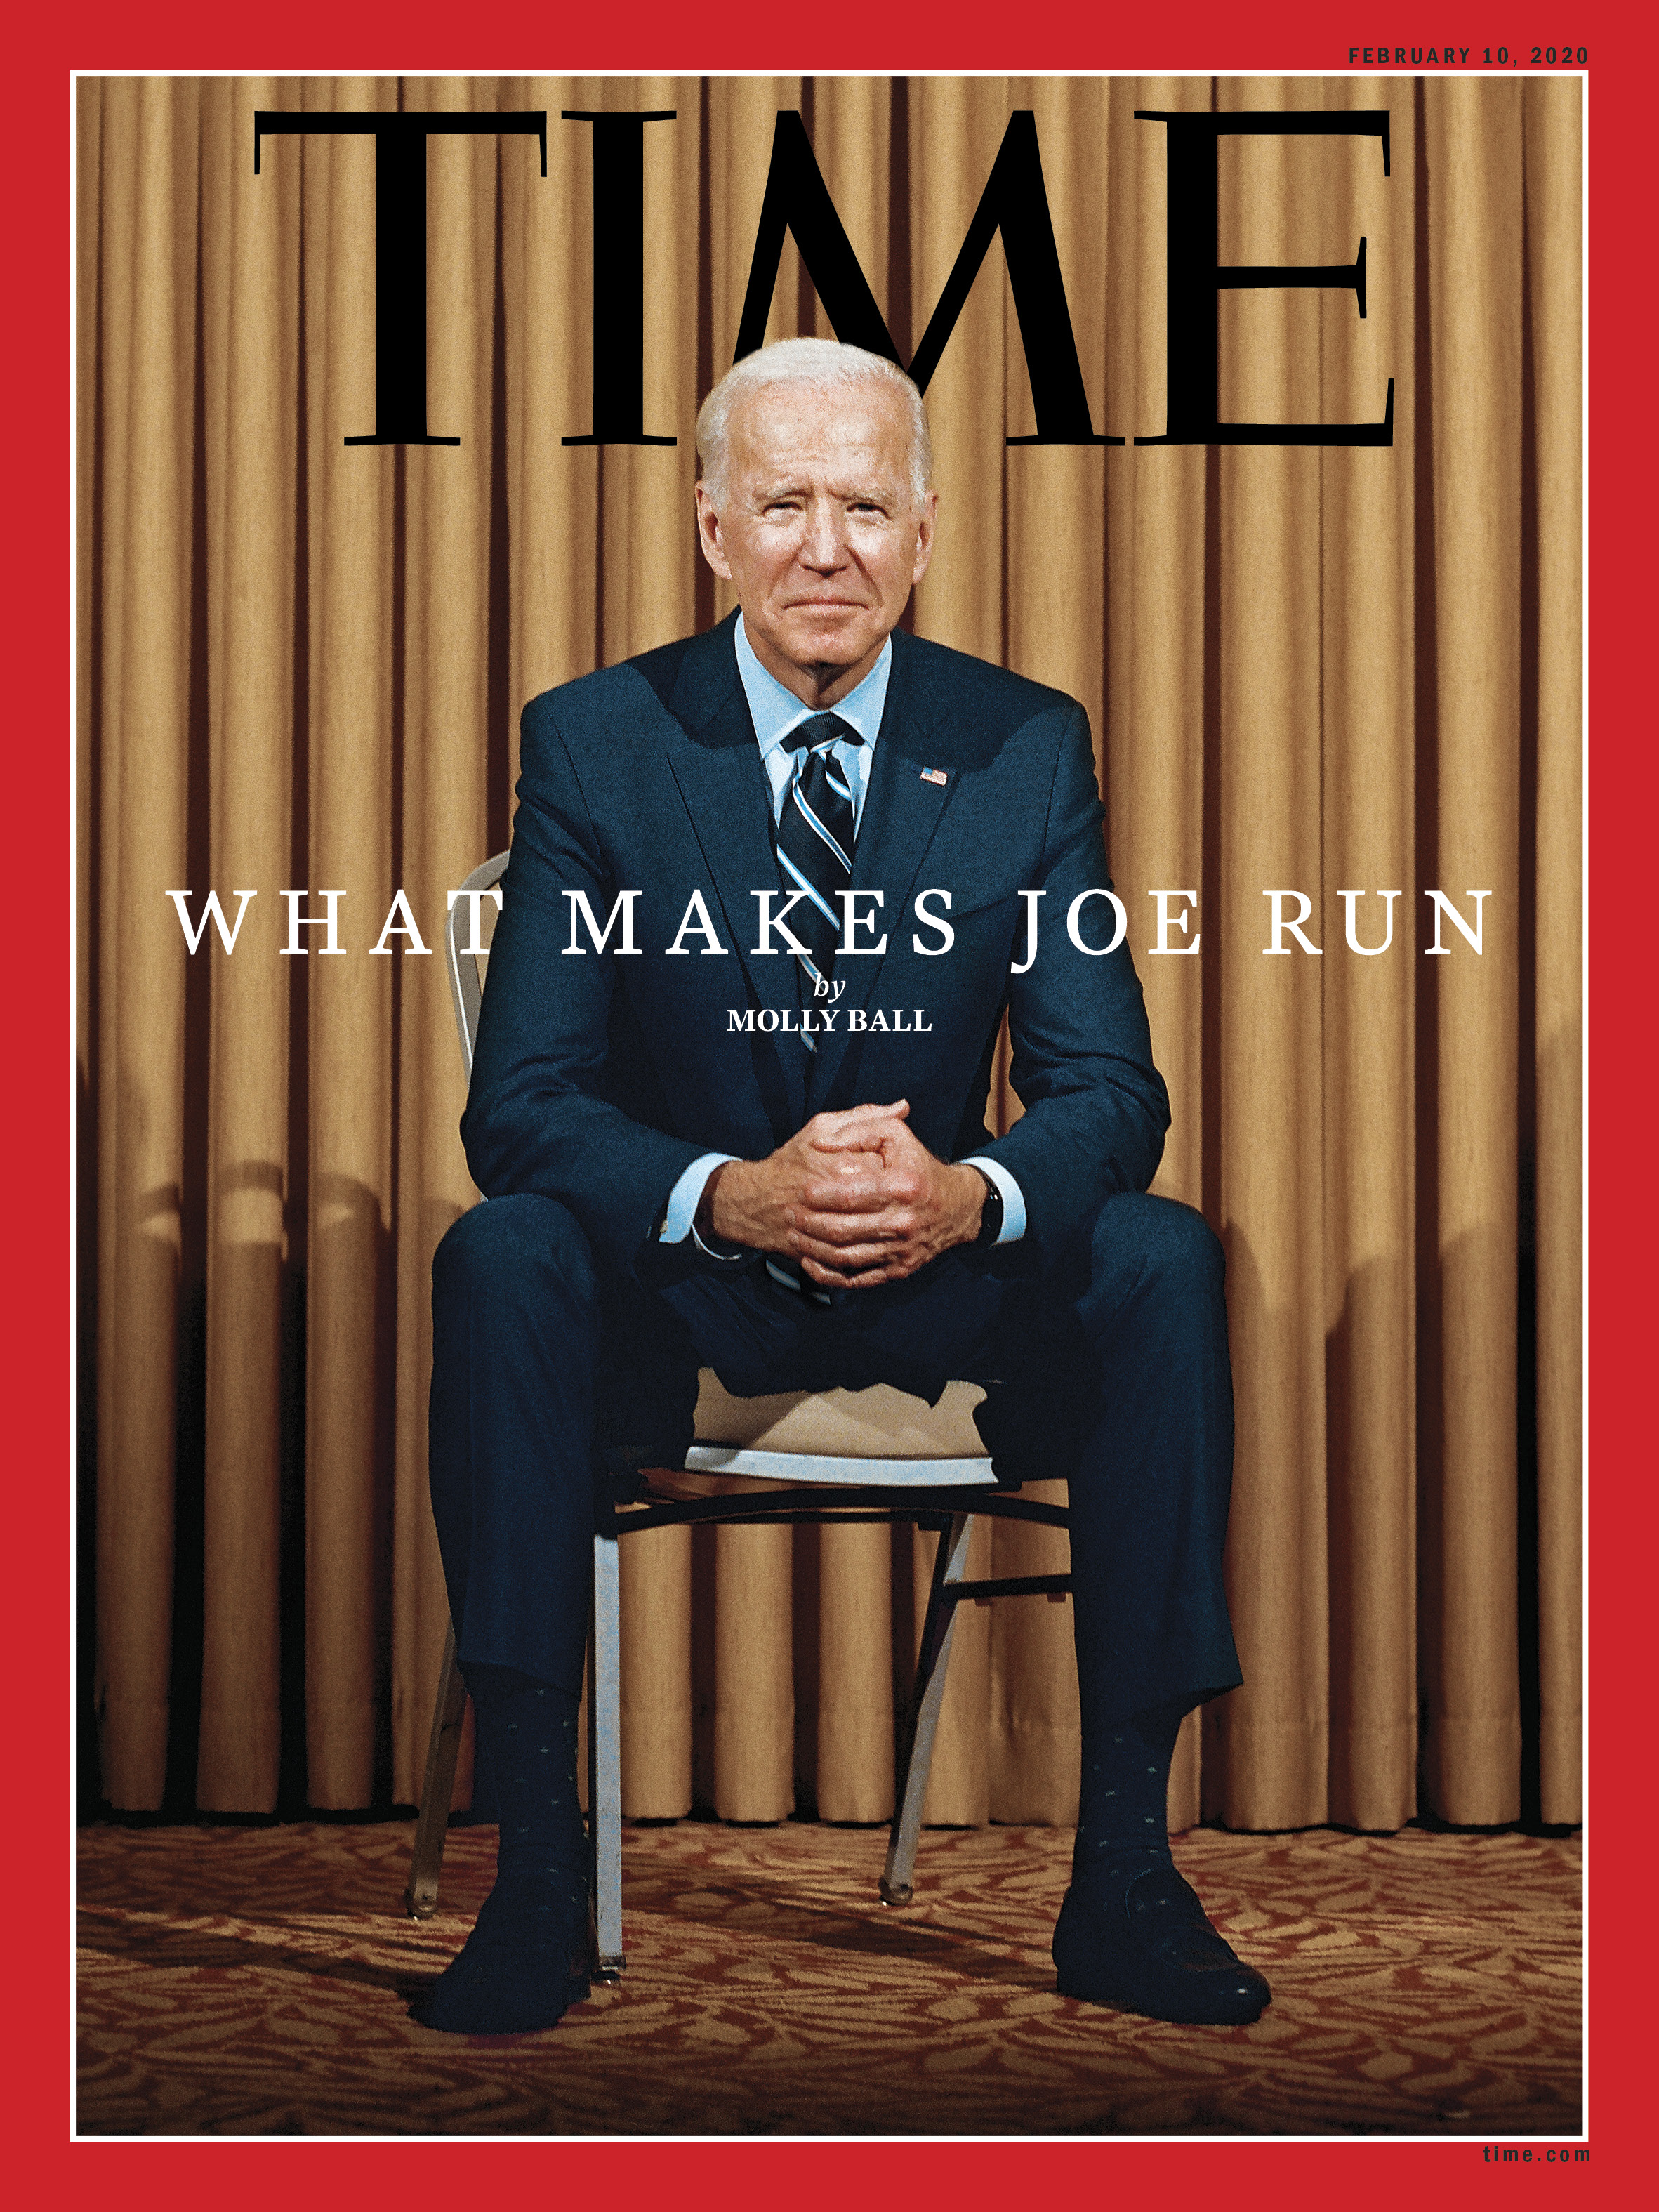 You Ve Got To Have Purpose Joe Biden S 2020 Campaign Is The